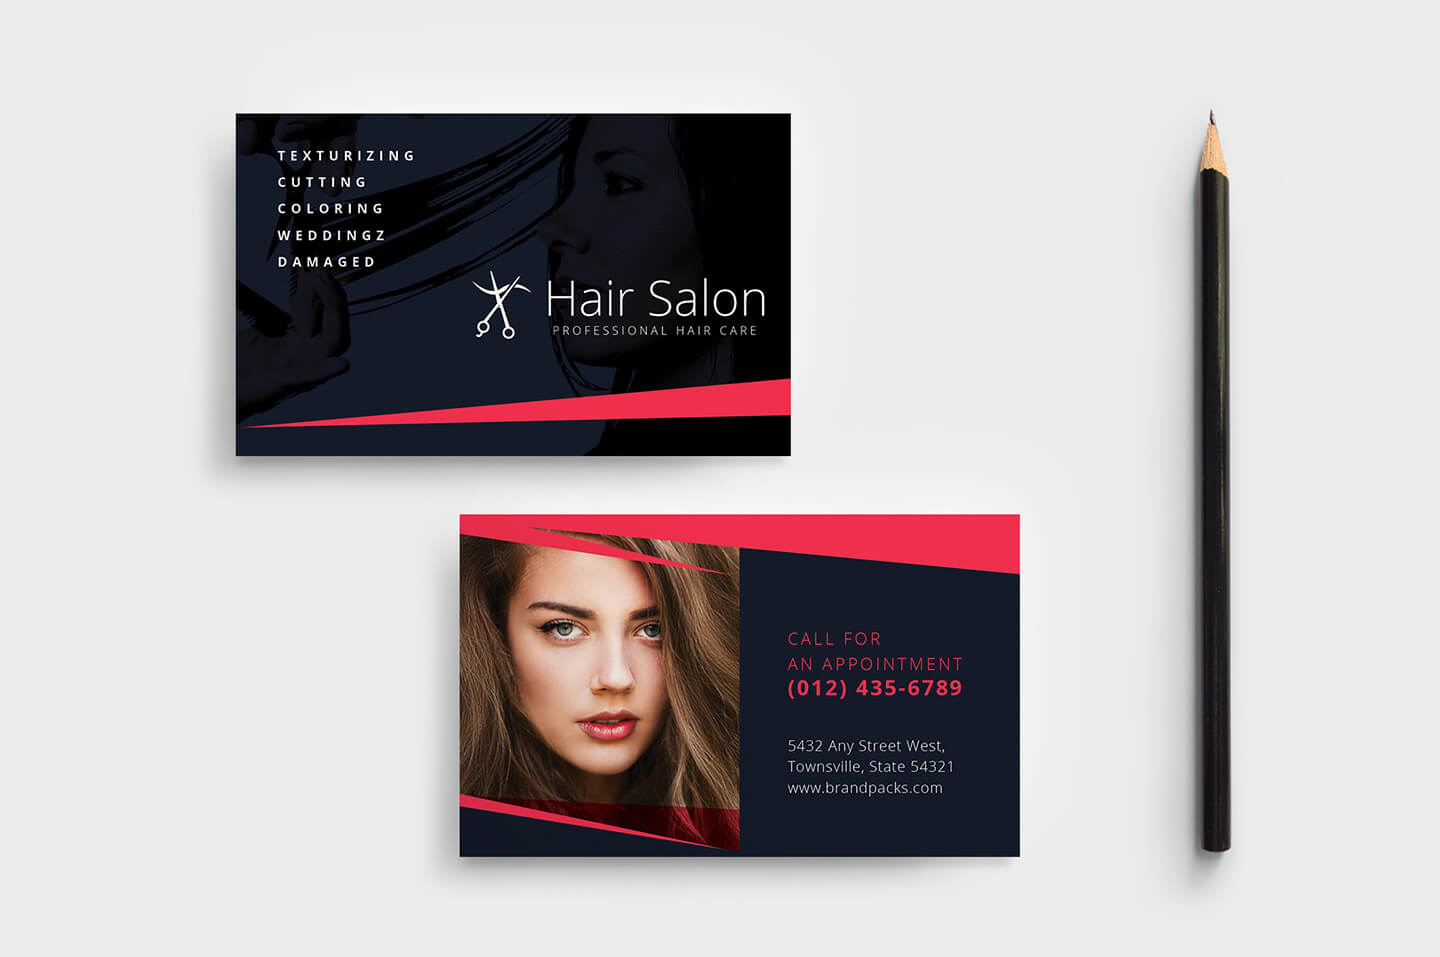 Hair Salon Business Card Template In Psd, Ai & Vector Pertaining To Hair Salon Business Card Template